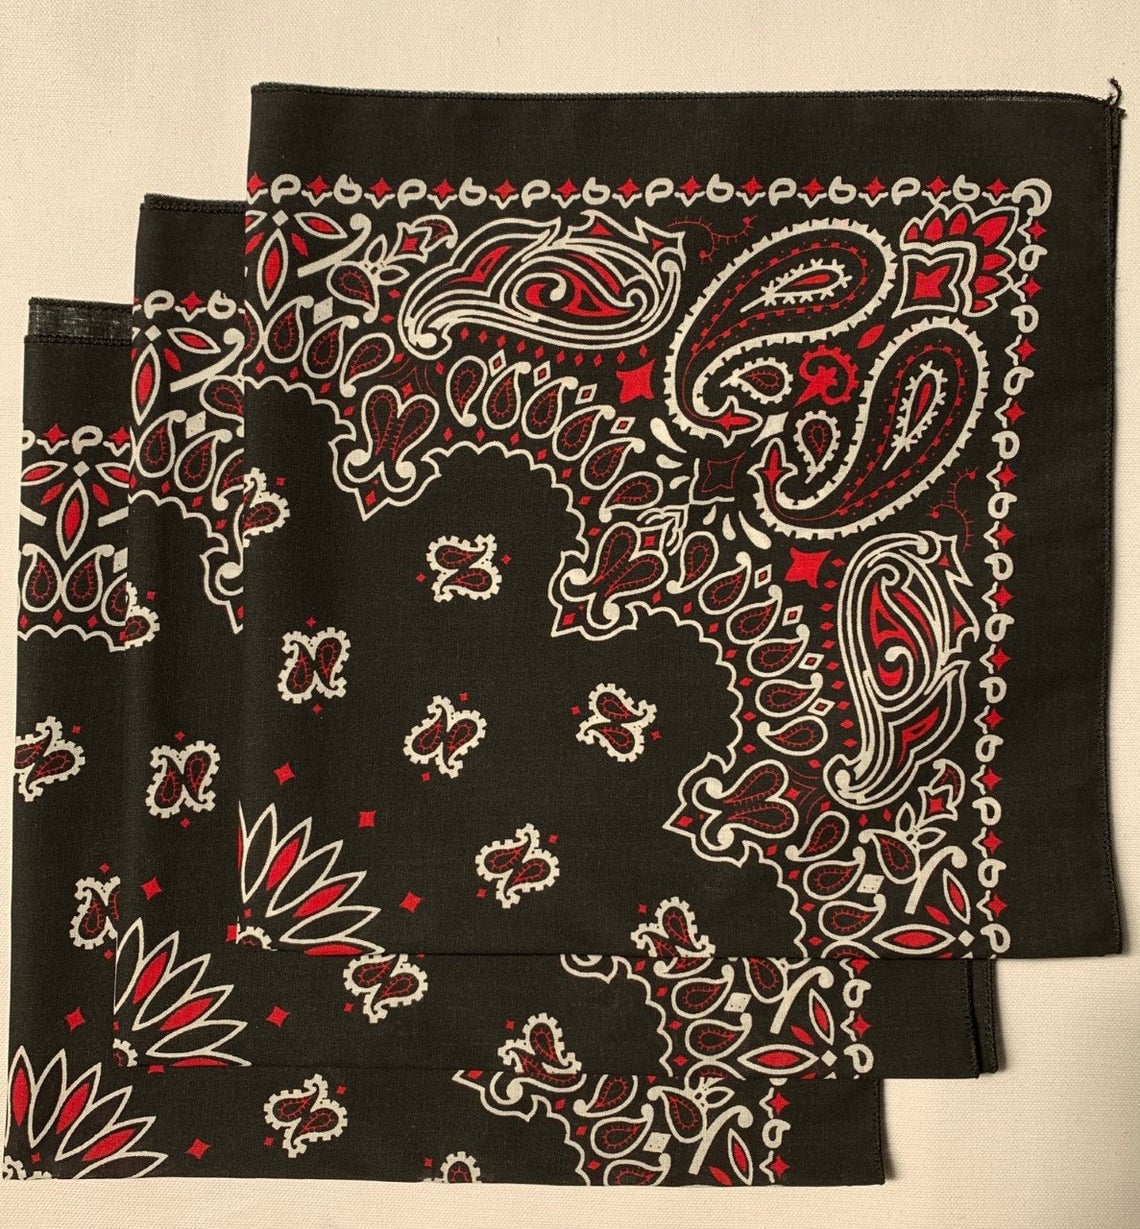 "Black/Red Paisley Bandanas - Made In The USA (3 Pk) 22"" x 22"""